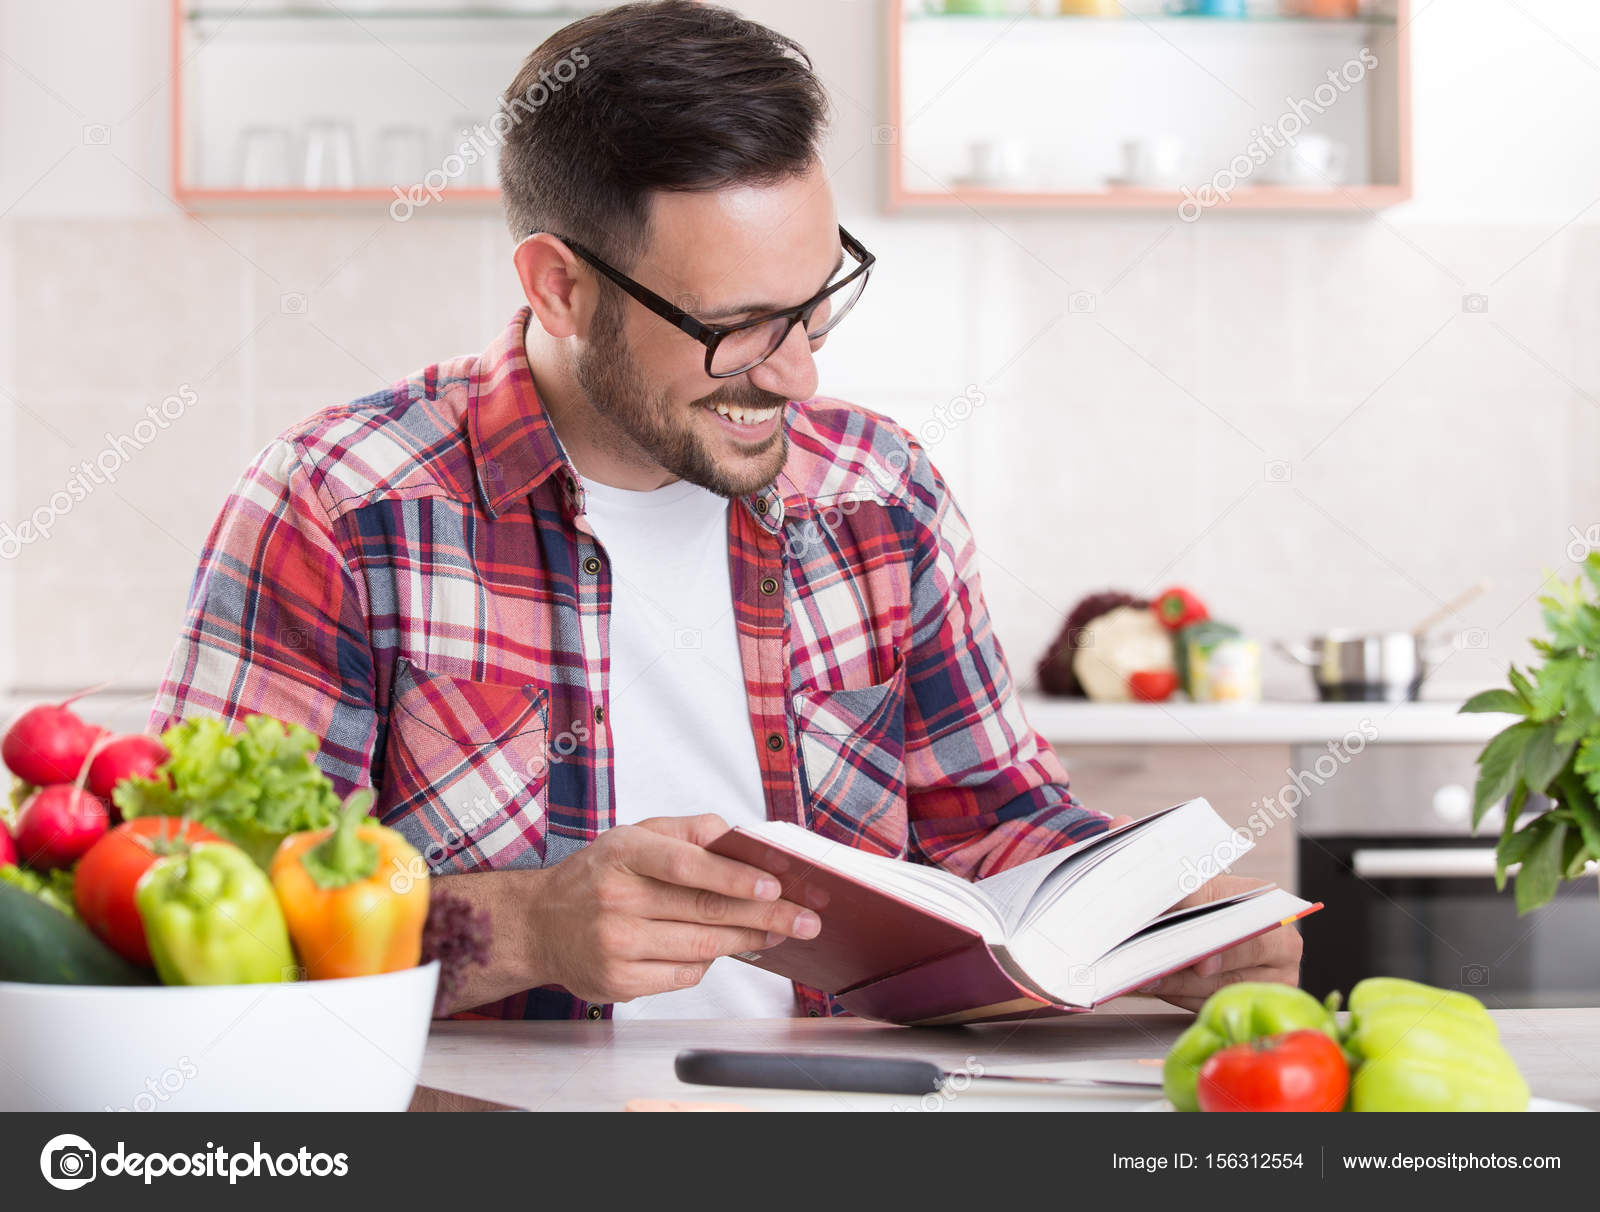 Man reading recipe book in kitchen stock photo budabar 156312554 man reading recipe book in kitchen stock photo forumfinder Image collections